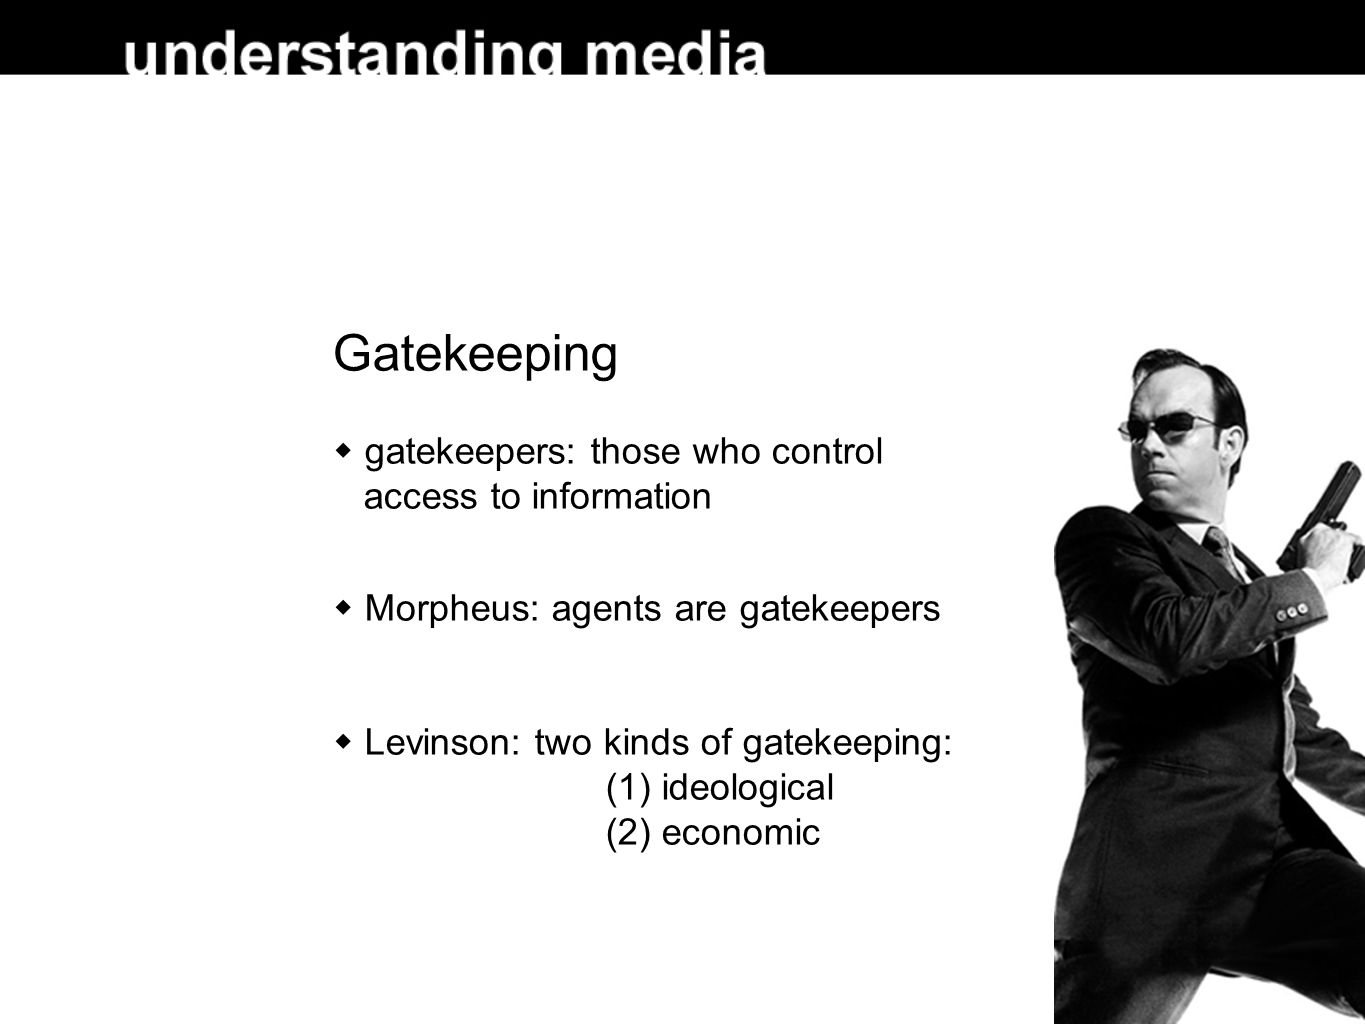 Gatekeeping gatekeepers: those who control access to information Morpheus: agents are gatekeepers Levinson: two kinds of gatekeeping: (1) ideological